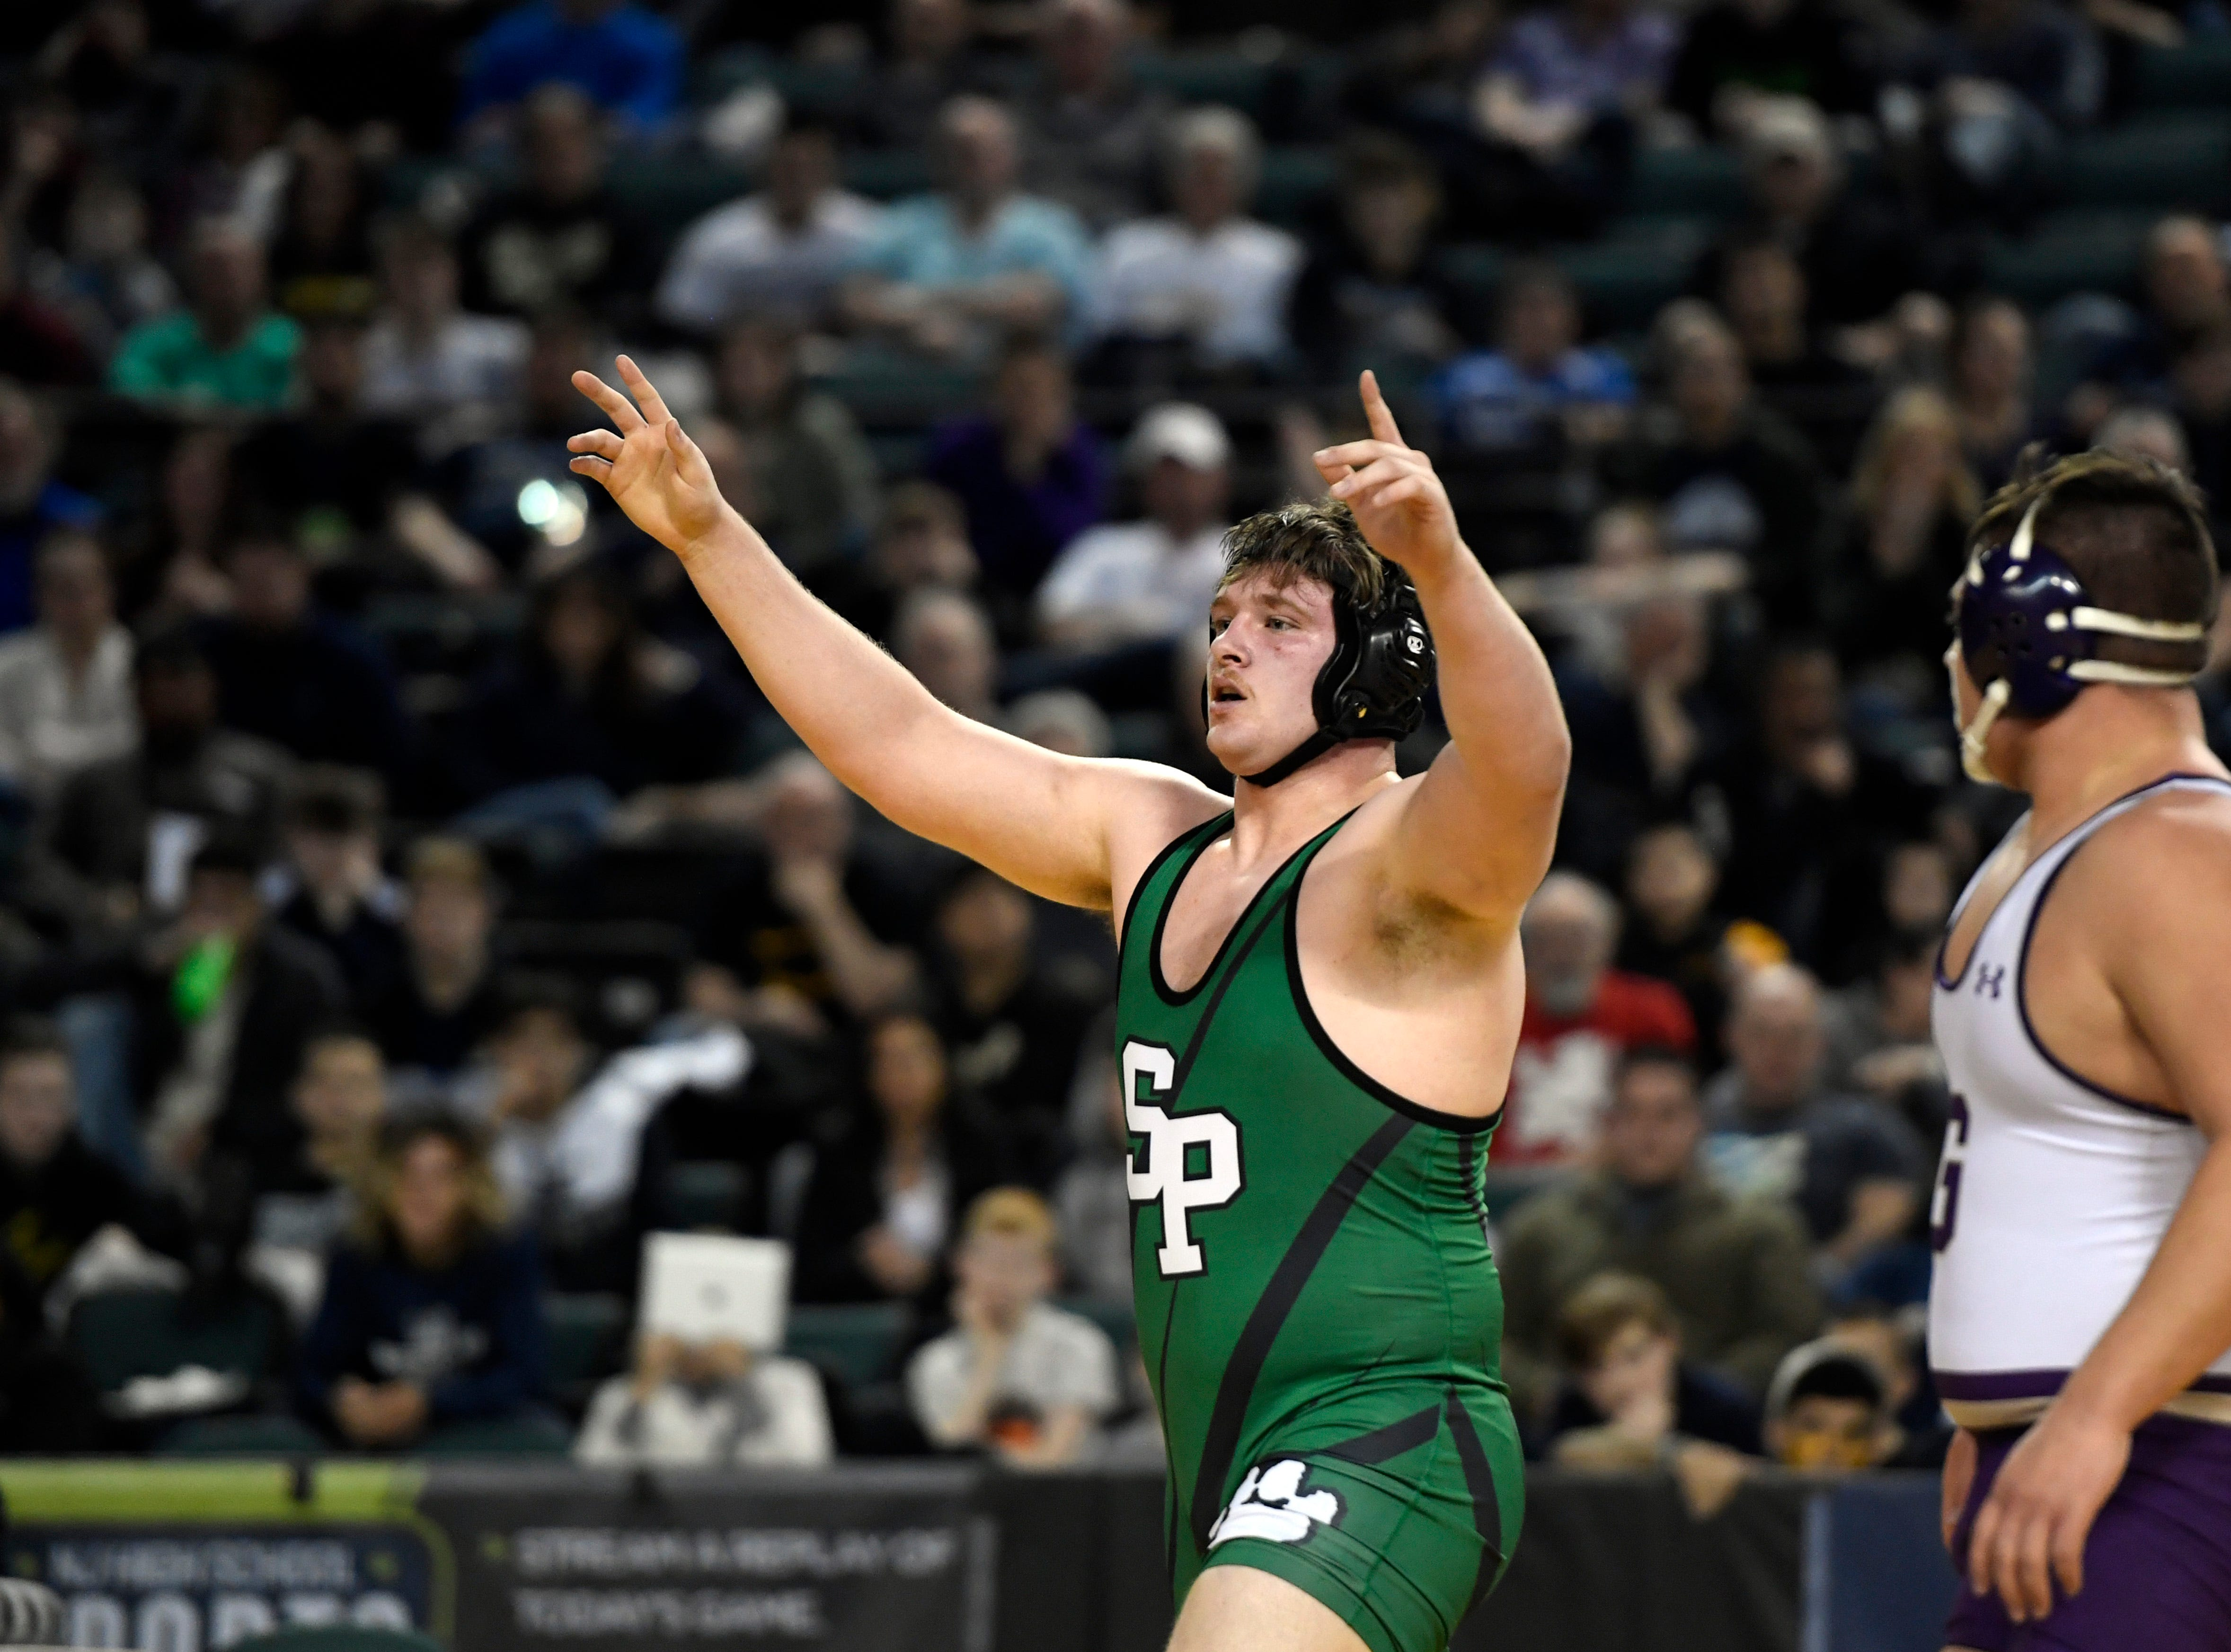 Zach DelVecchio of South Plainfield defeats Michael Filieri of Garfield, right, for the 220-pound title during the NJSIAA state wrestling tournament on Saturday, March 2, 2019, in Atlantic City.